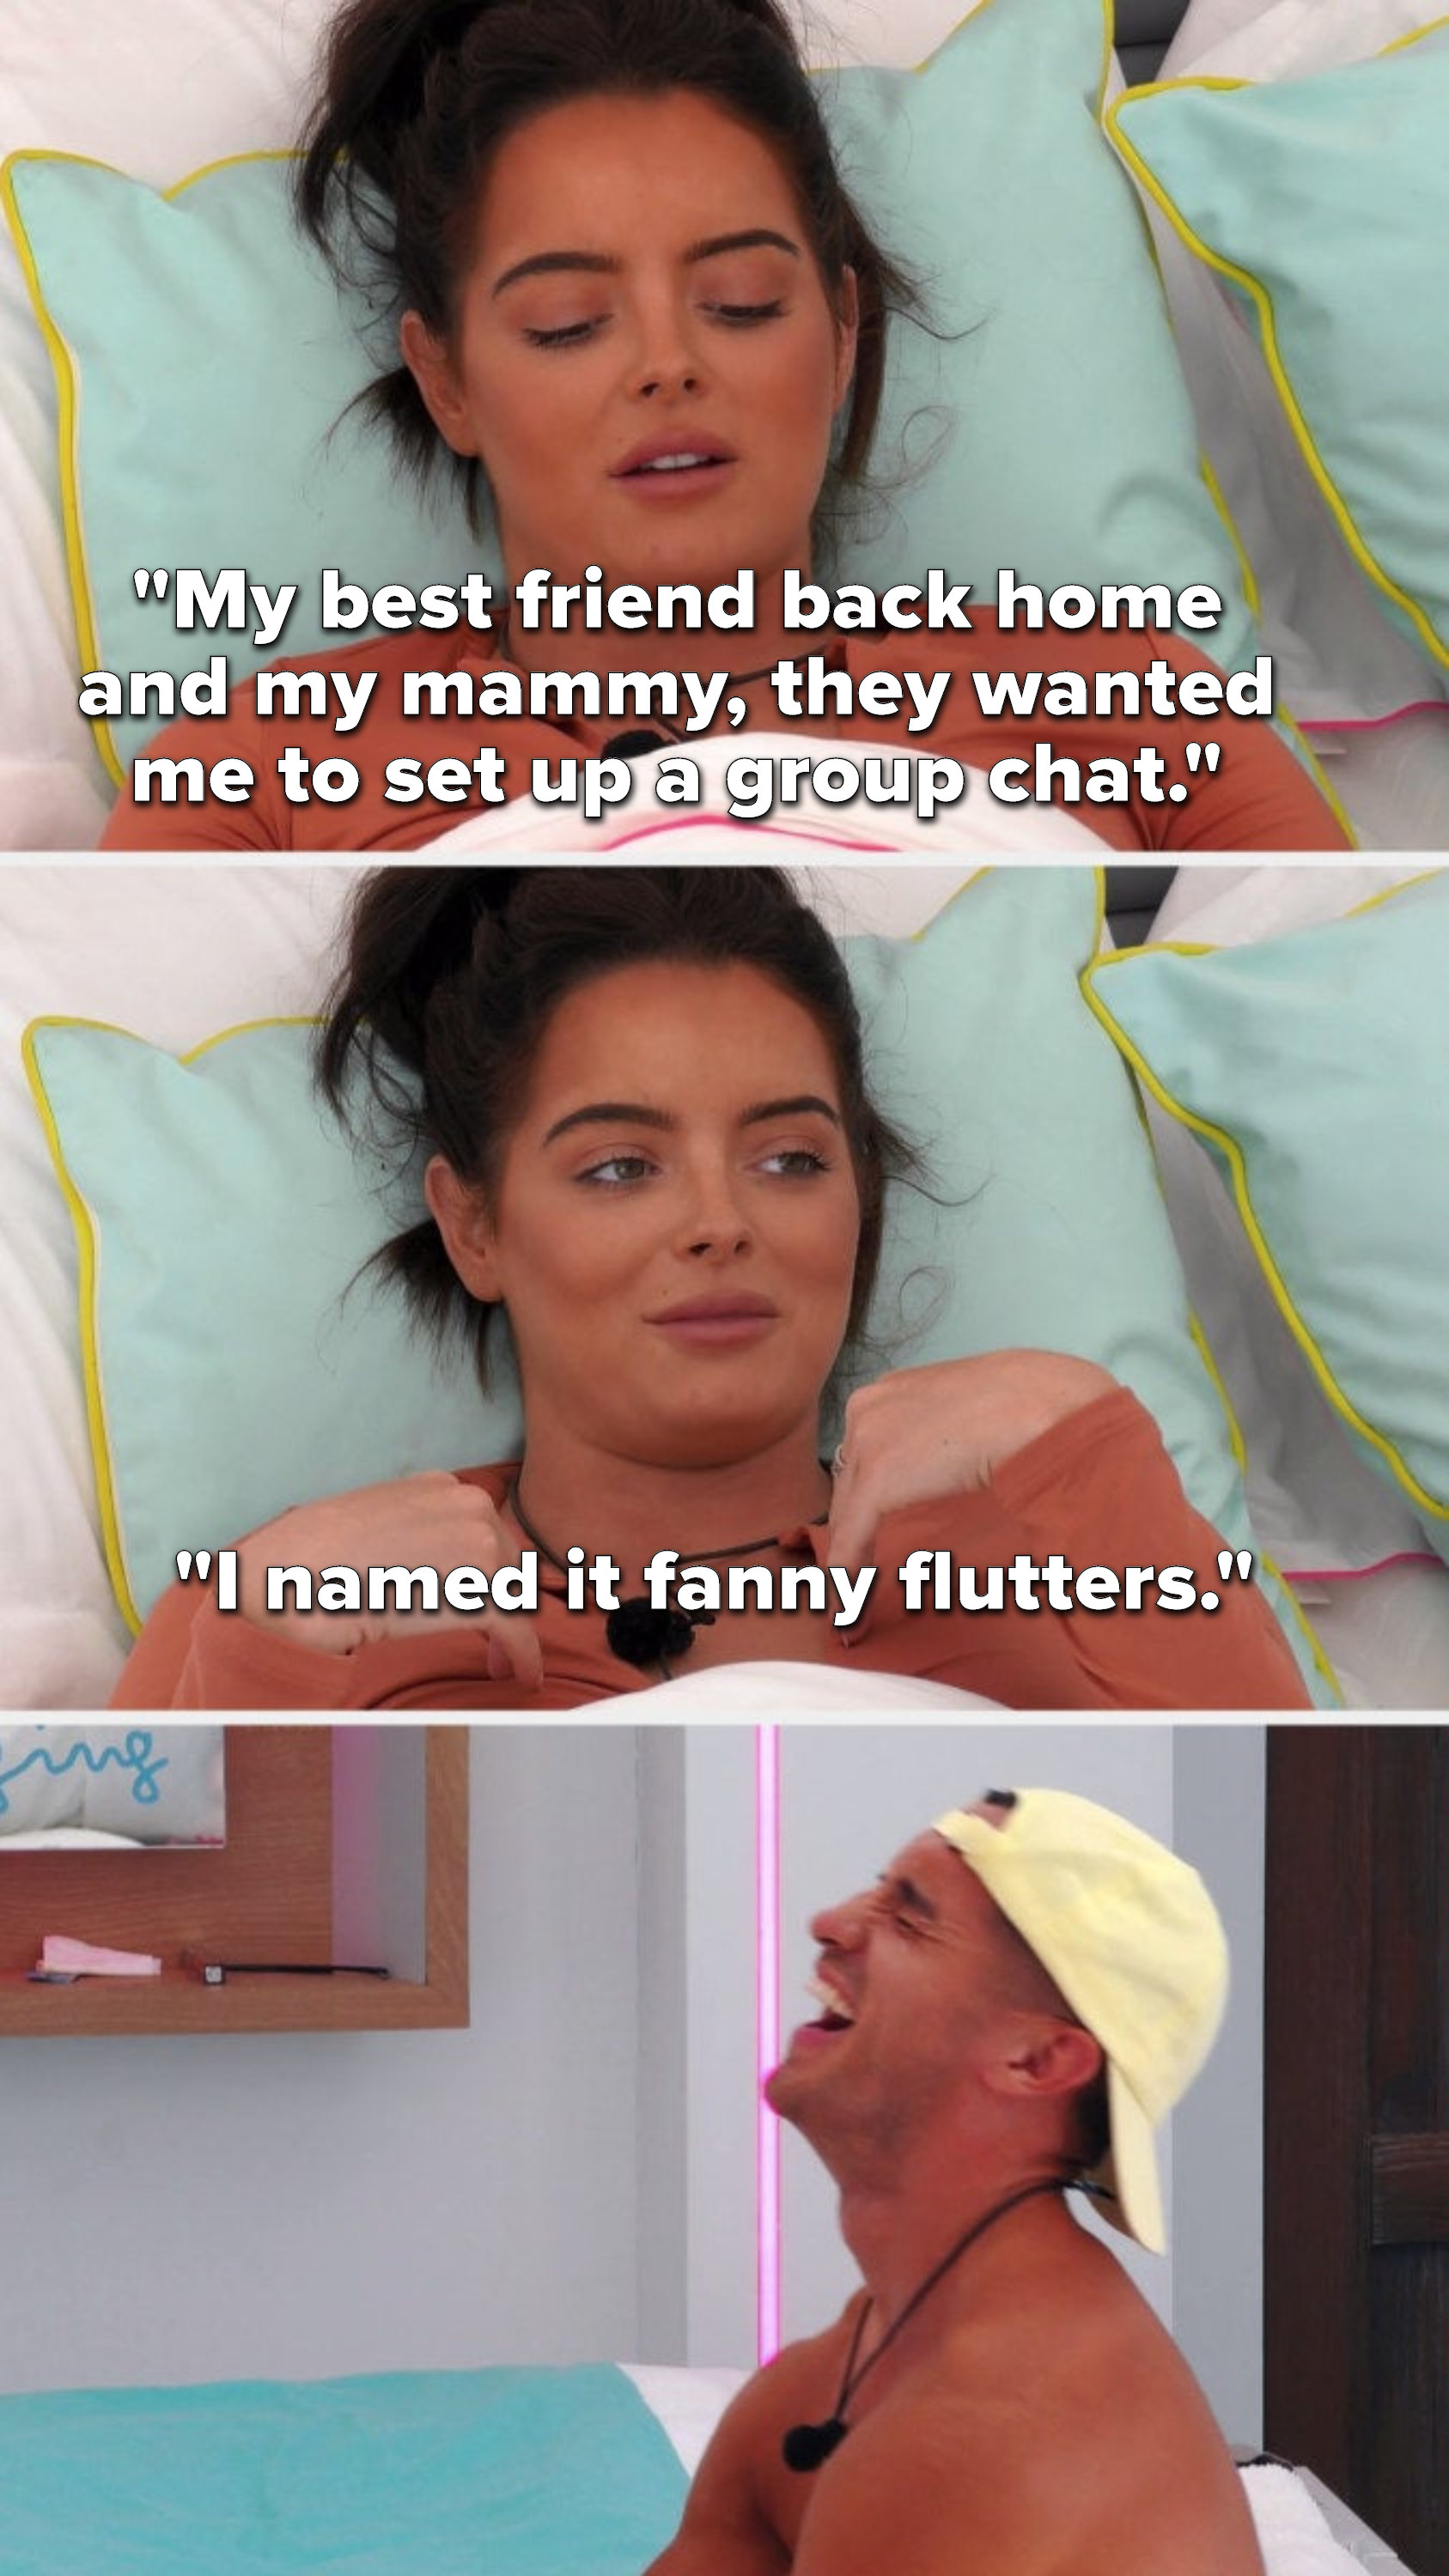 """Maura says, """"My best friend back home and my mammy, they wanted me to set up a group chat, I named it fanny flutters"""""""